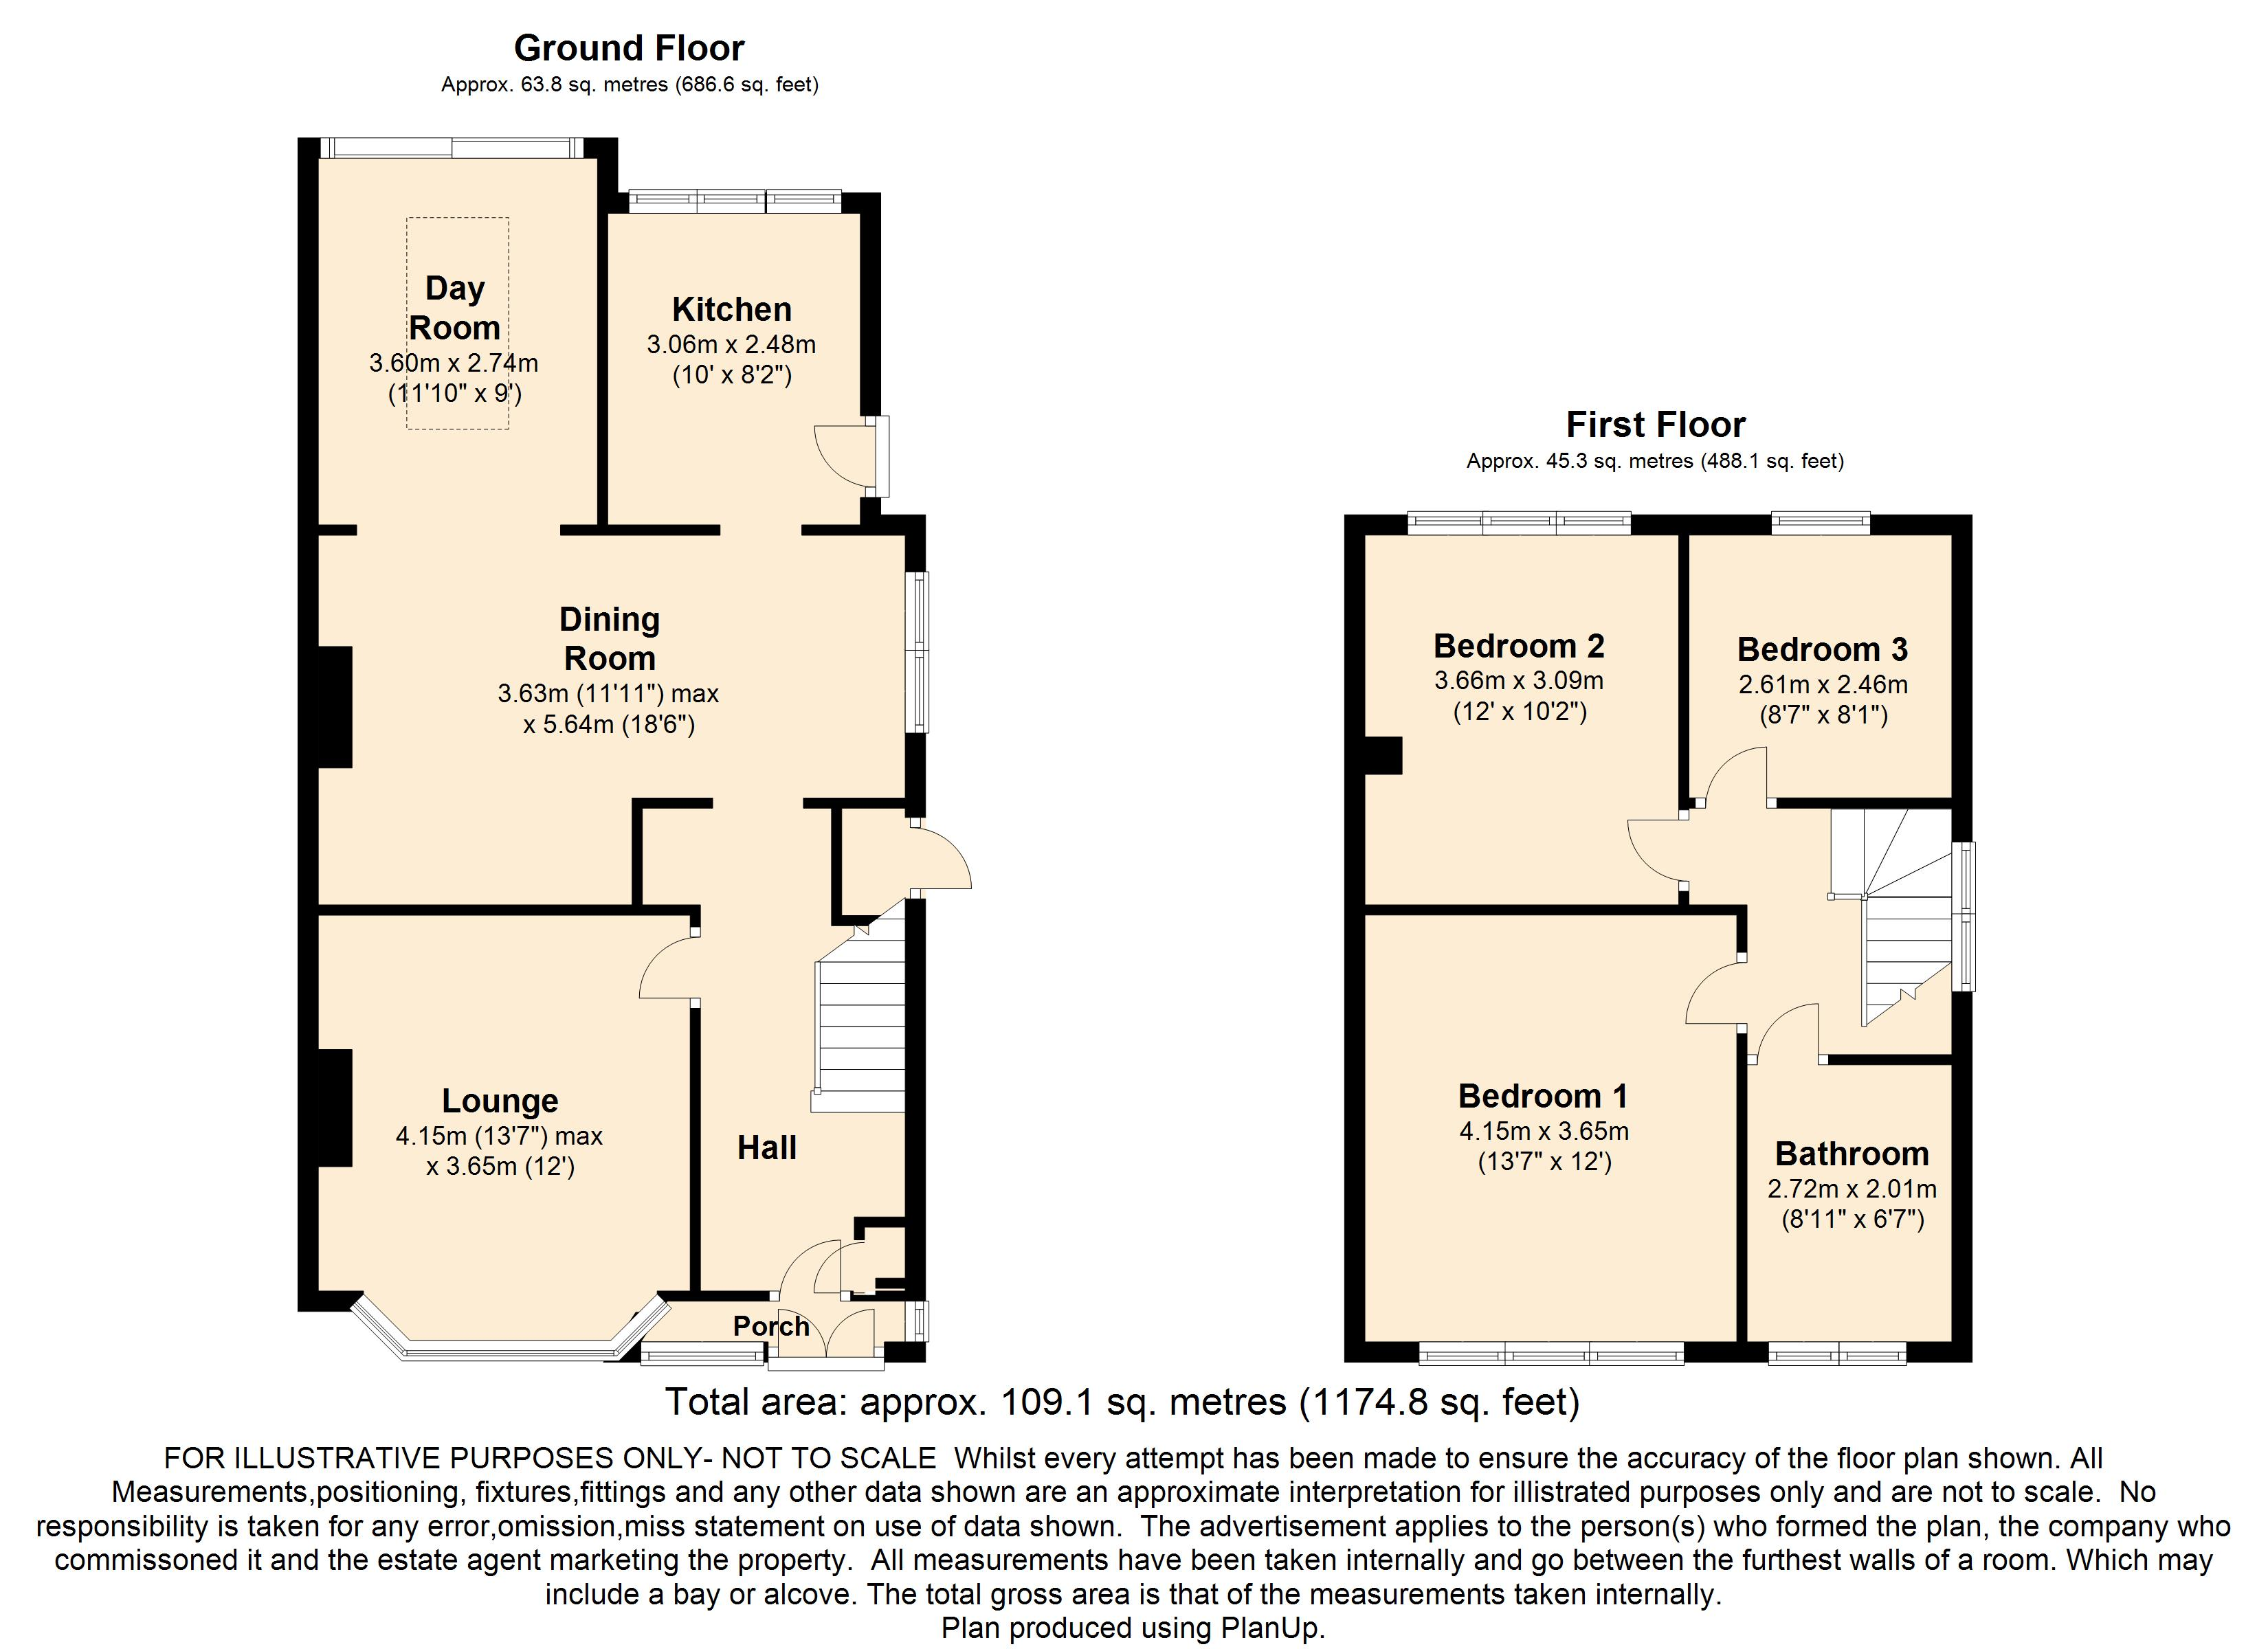 81_Maldon_Rd,_Cheam floor plan